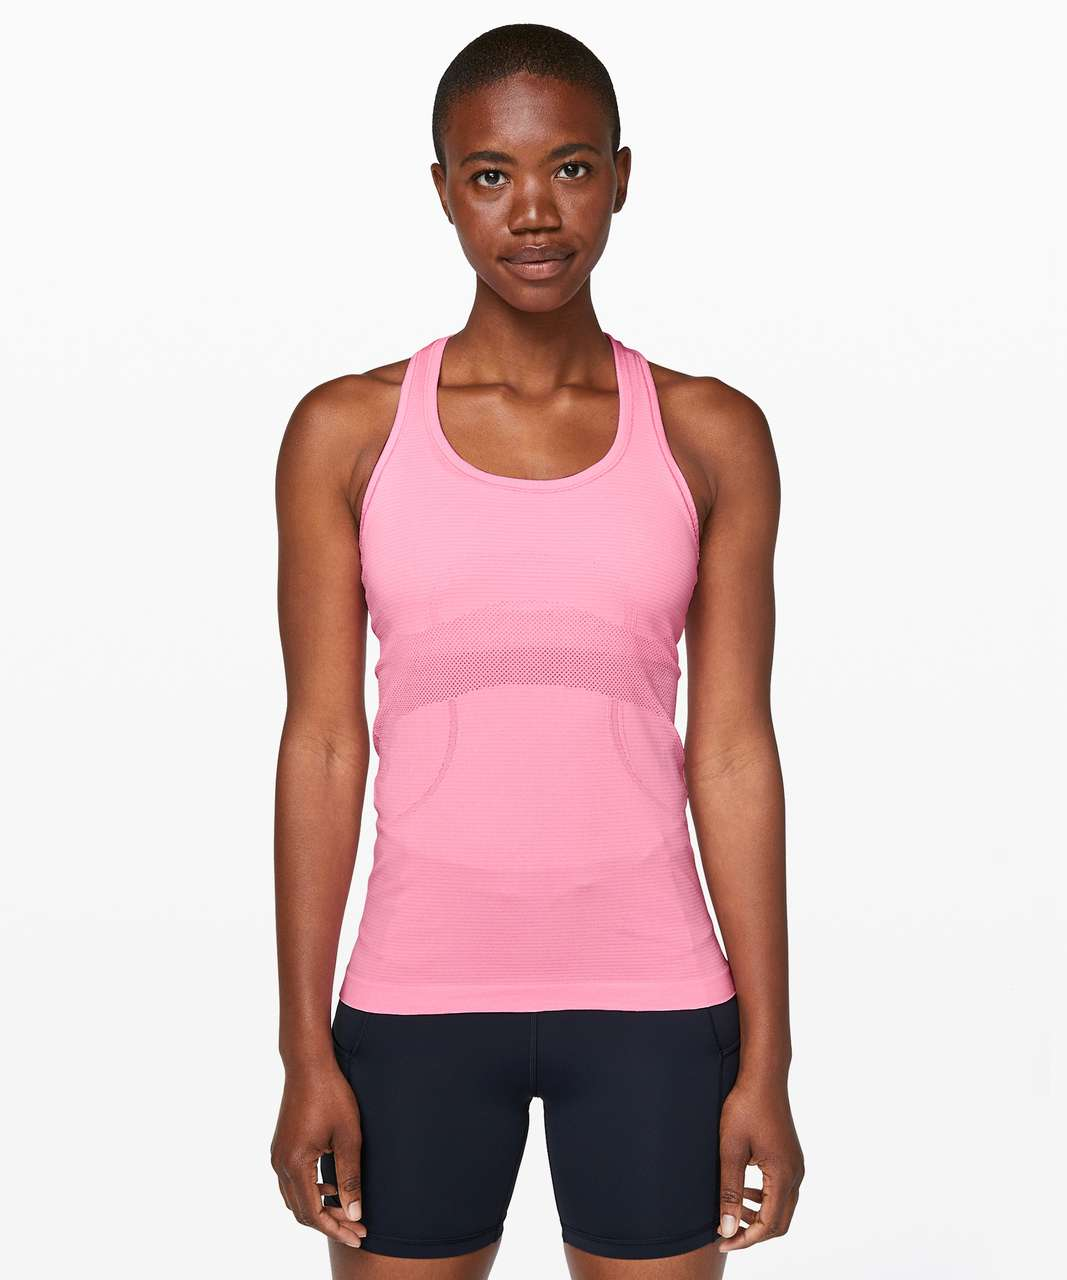 Lululemon Swiftly Tech Racerback - Pink Shell / White